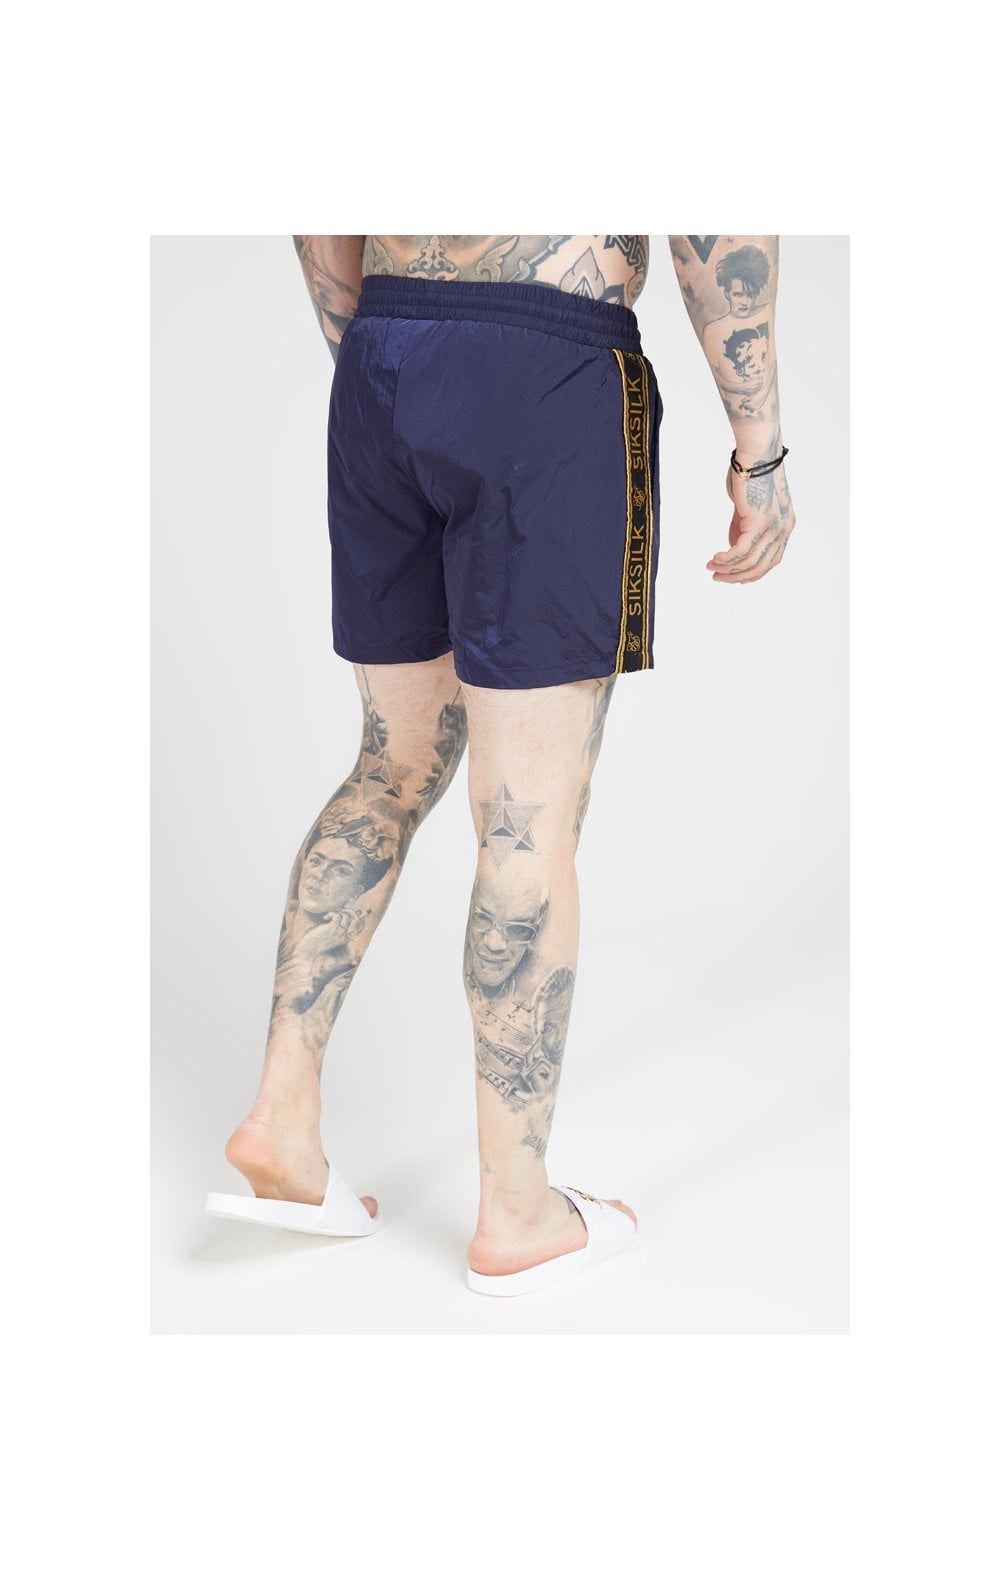 Load image into Gallery viewer, SikSilk Crushed Nylon Tape Shorts – Navy & Gold (4)